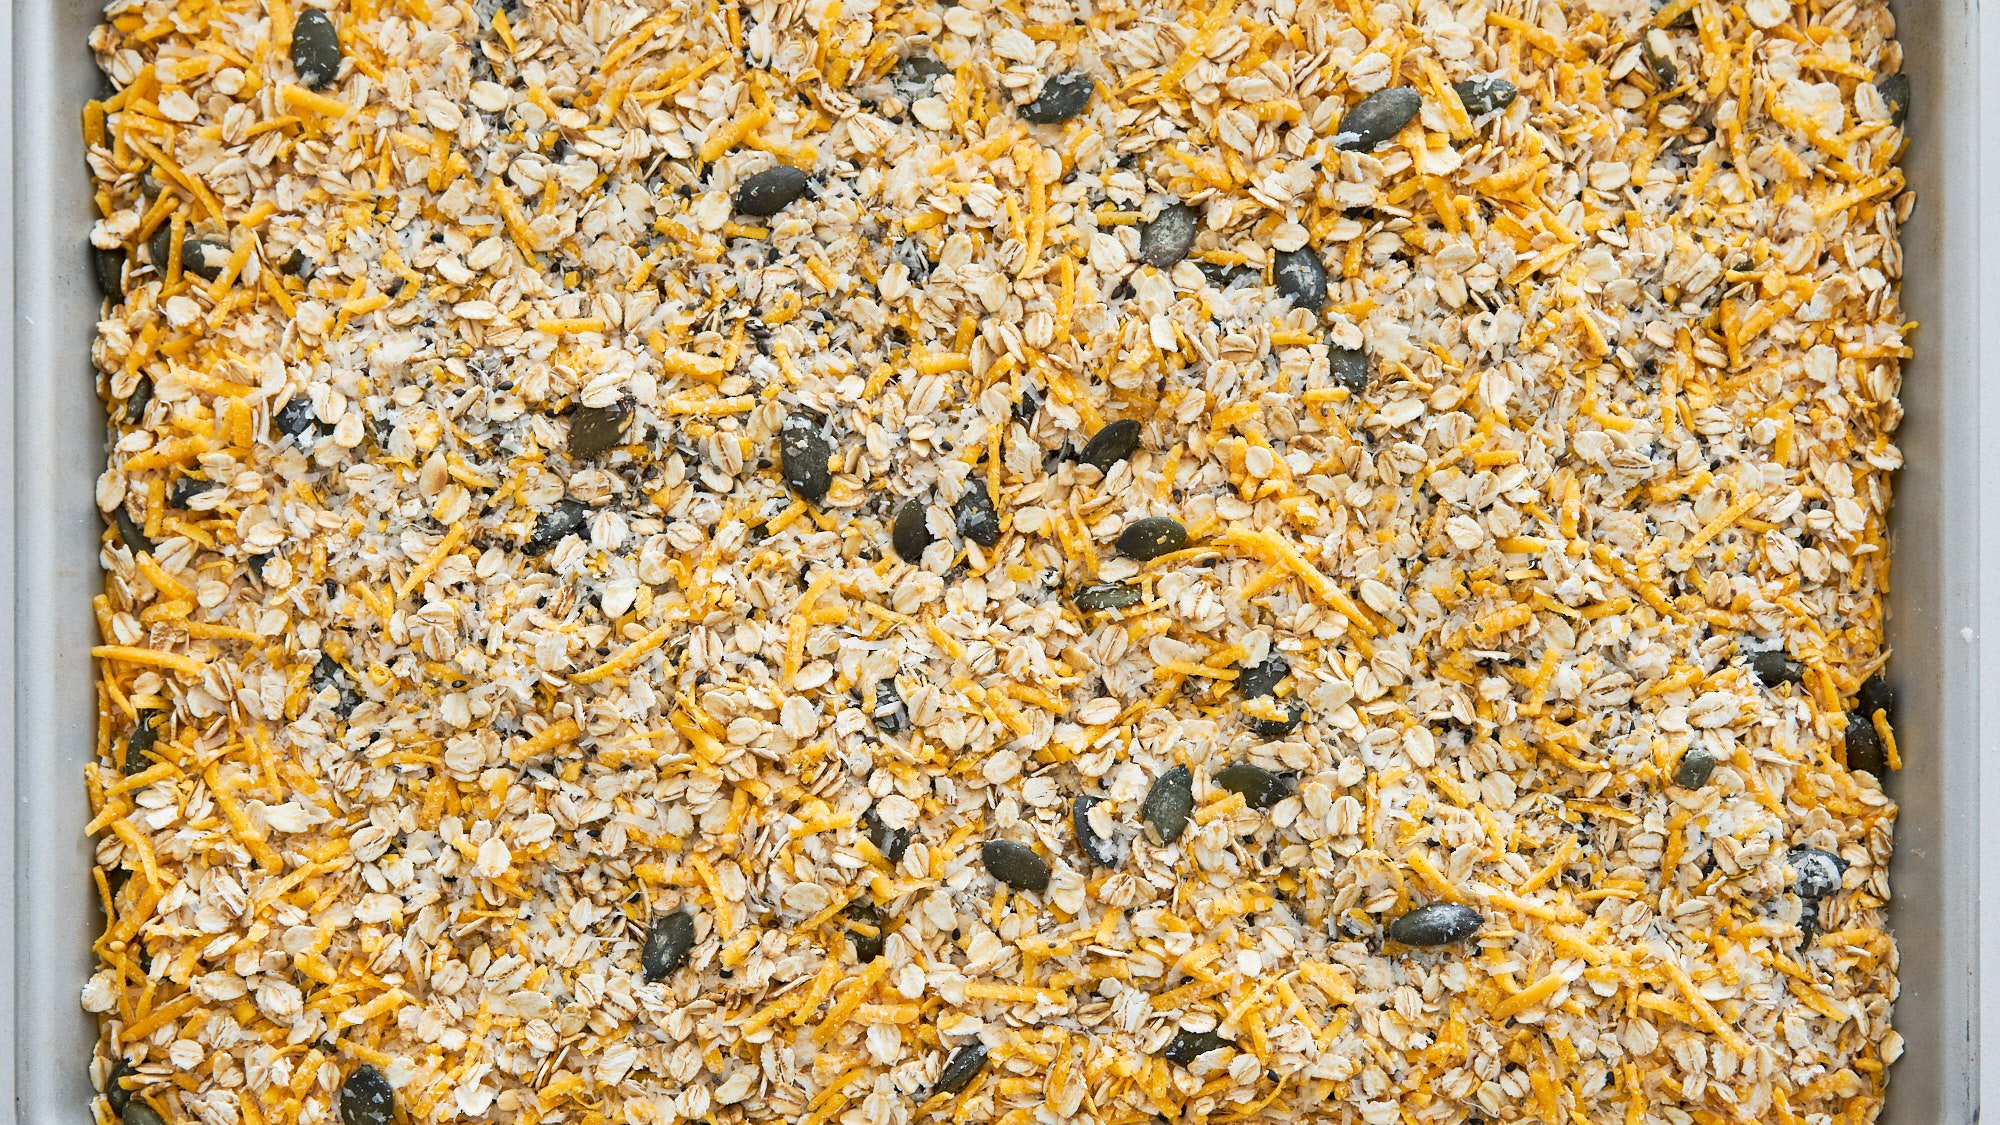 Cheese and savory granola mixture spread out on a baking sheet.